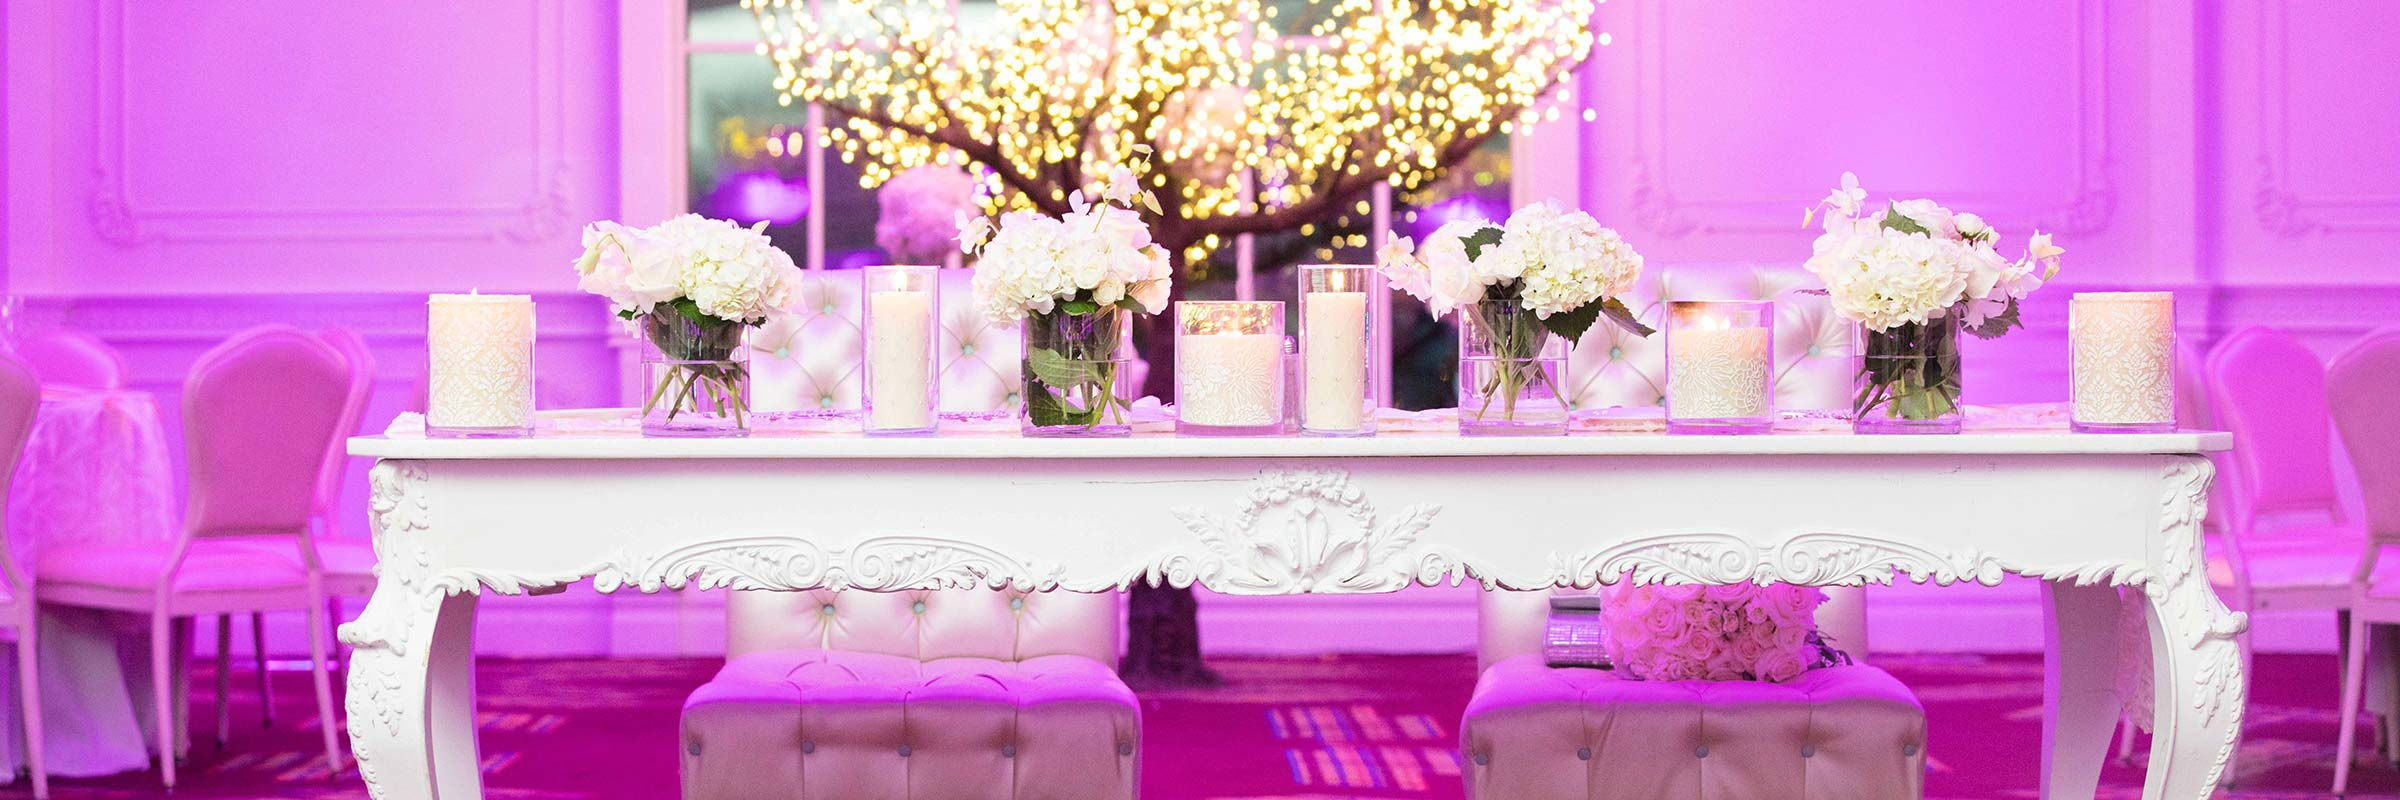 Fresh Flowers Wedding Reception Sweetheart Table